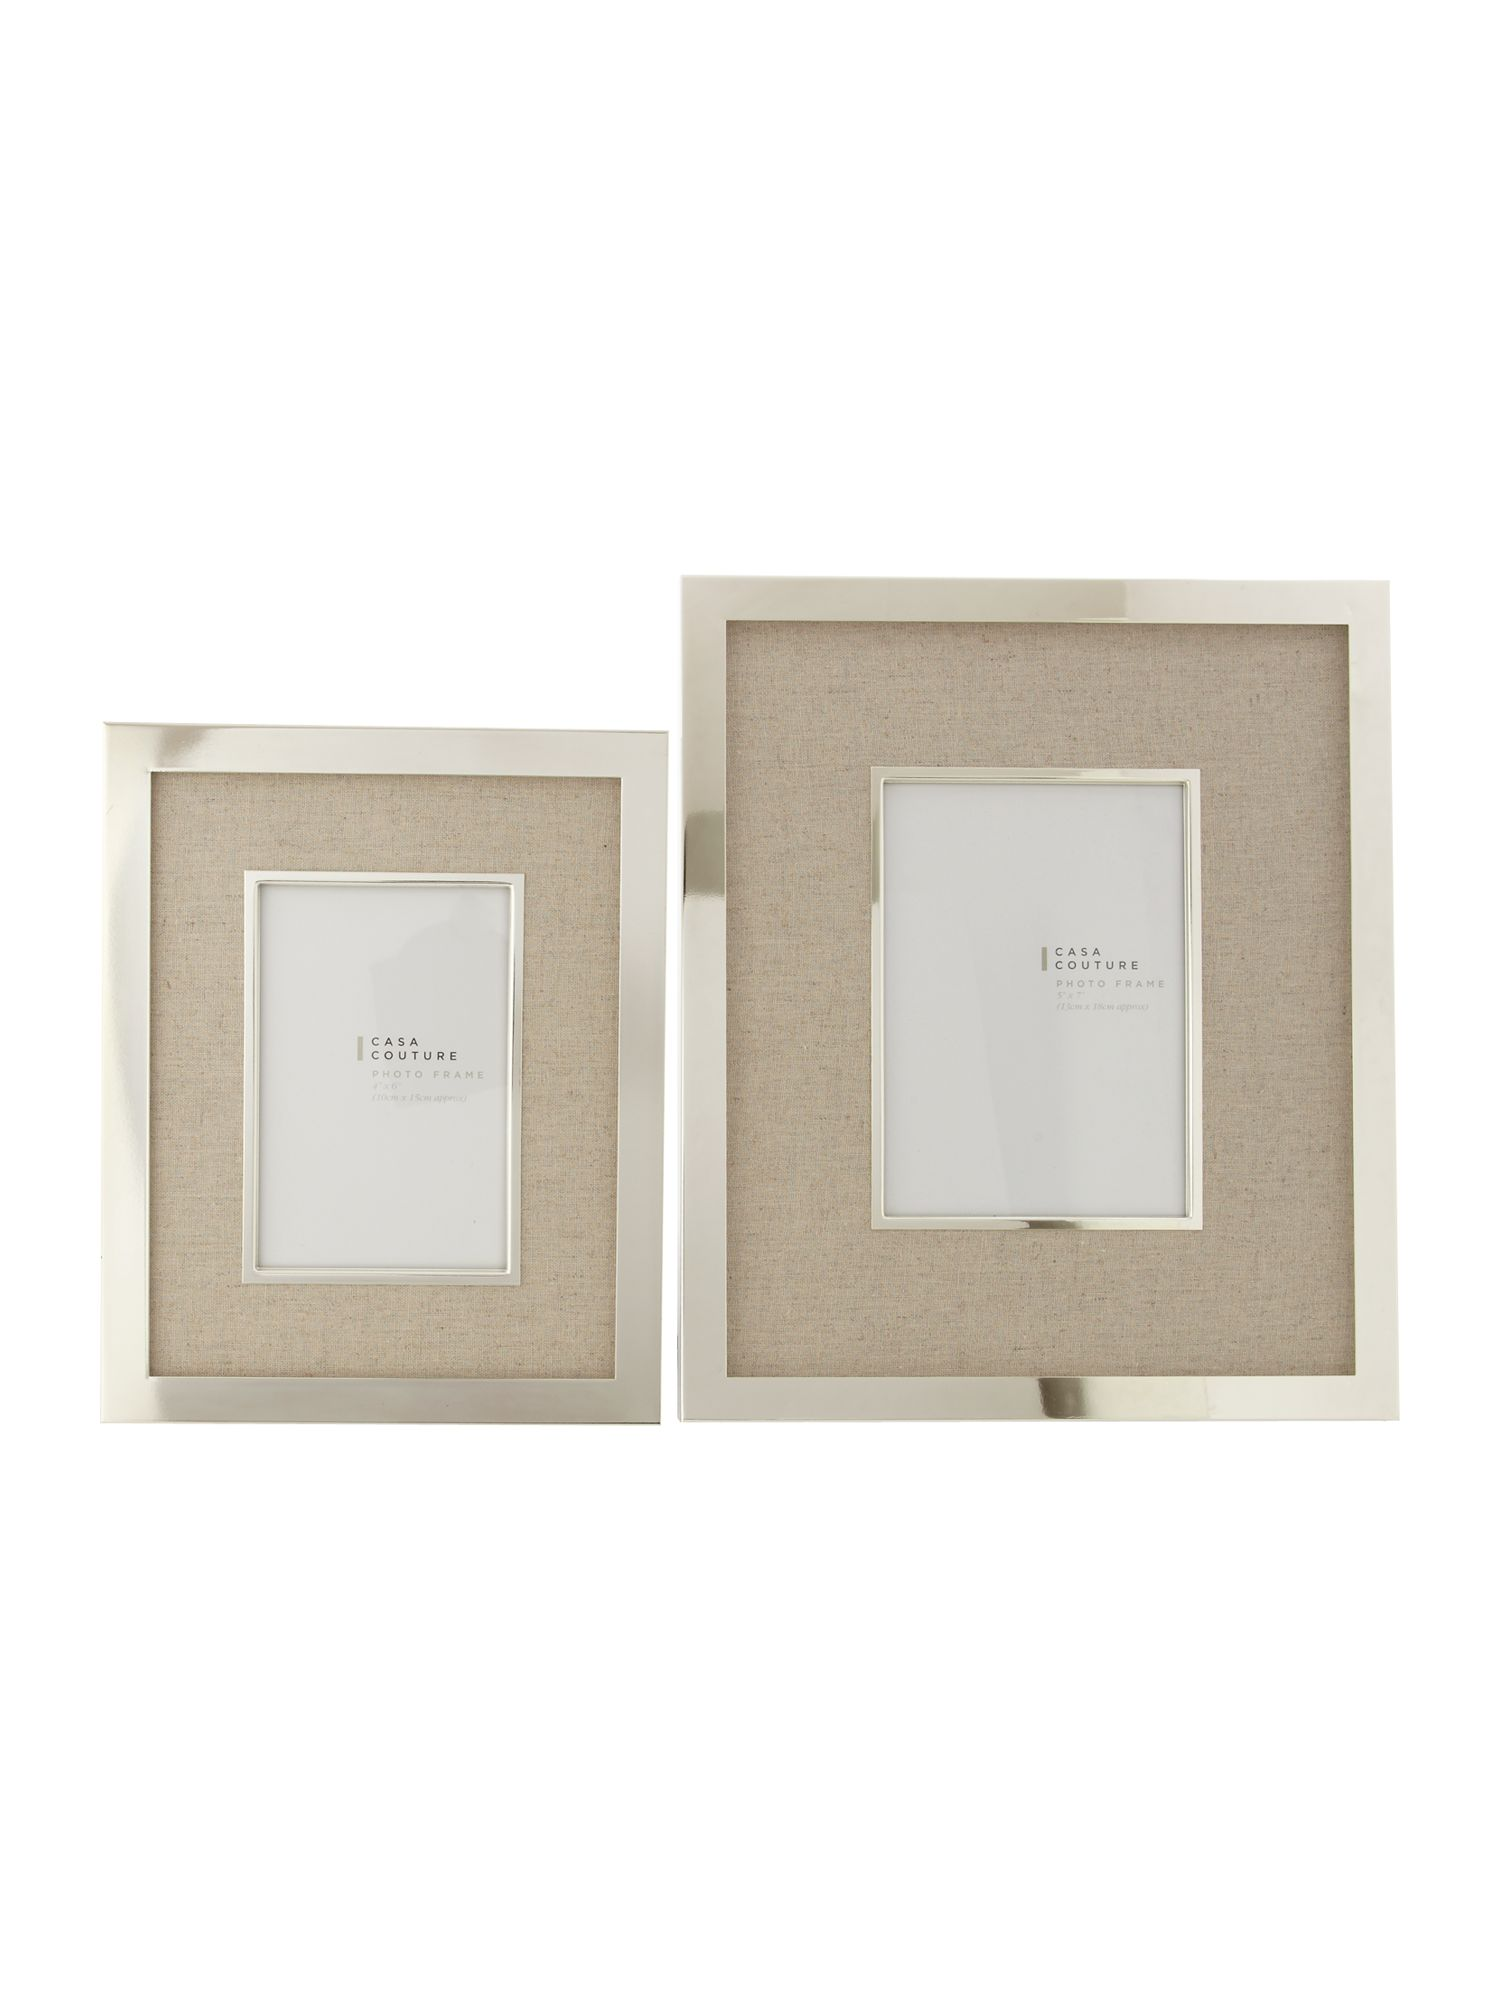 Cream fabric photo frames